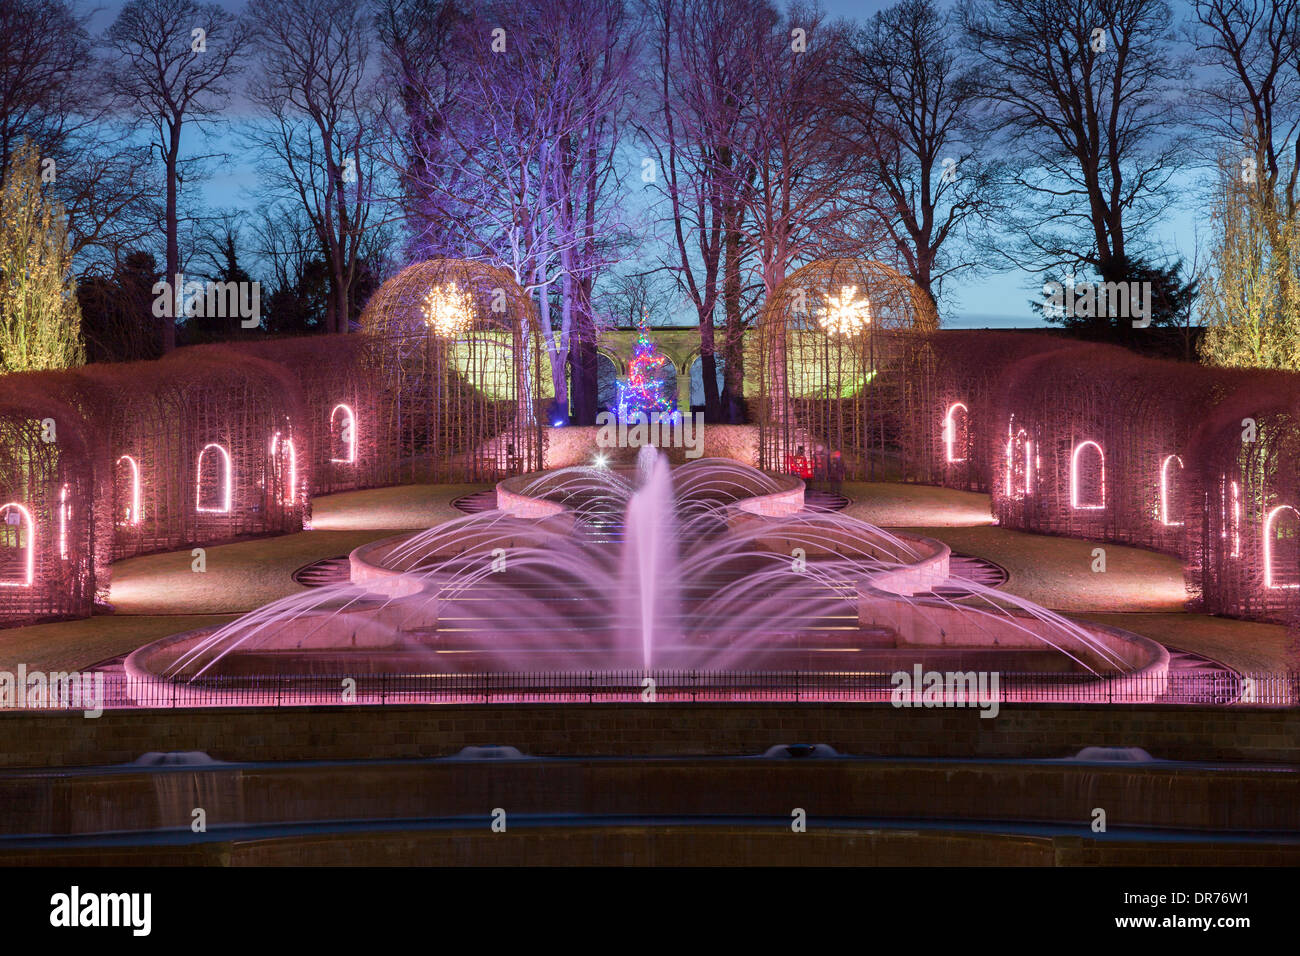 Winter Lighting at Alnwick Gardens and Fountains, Northumberland - Stock Image